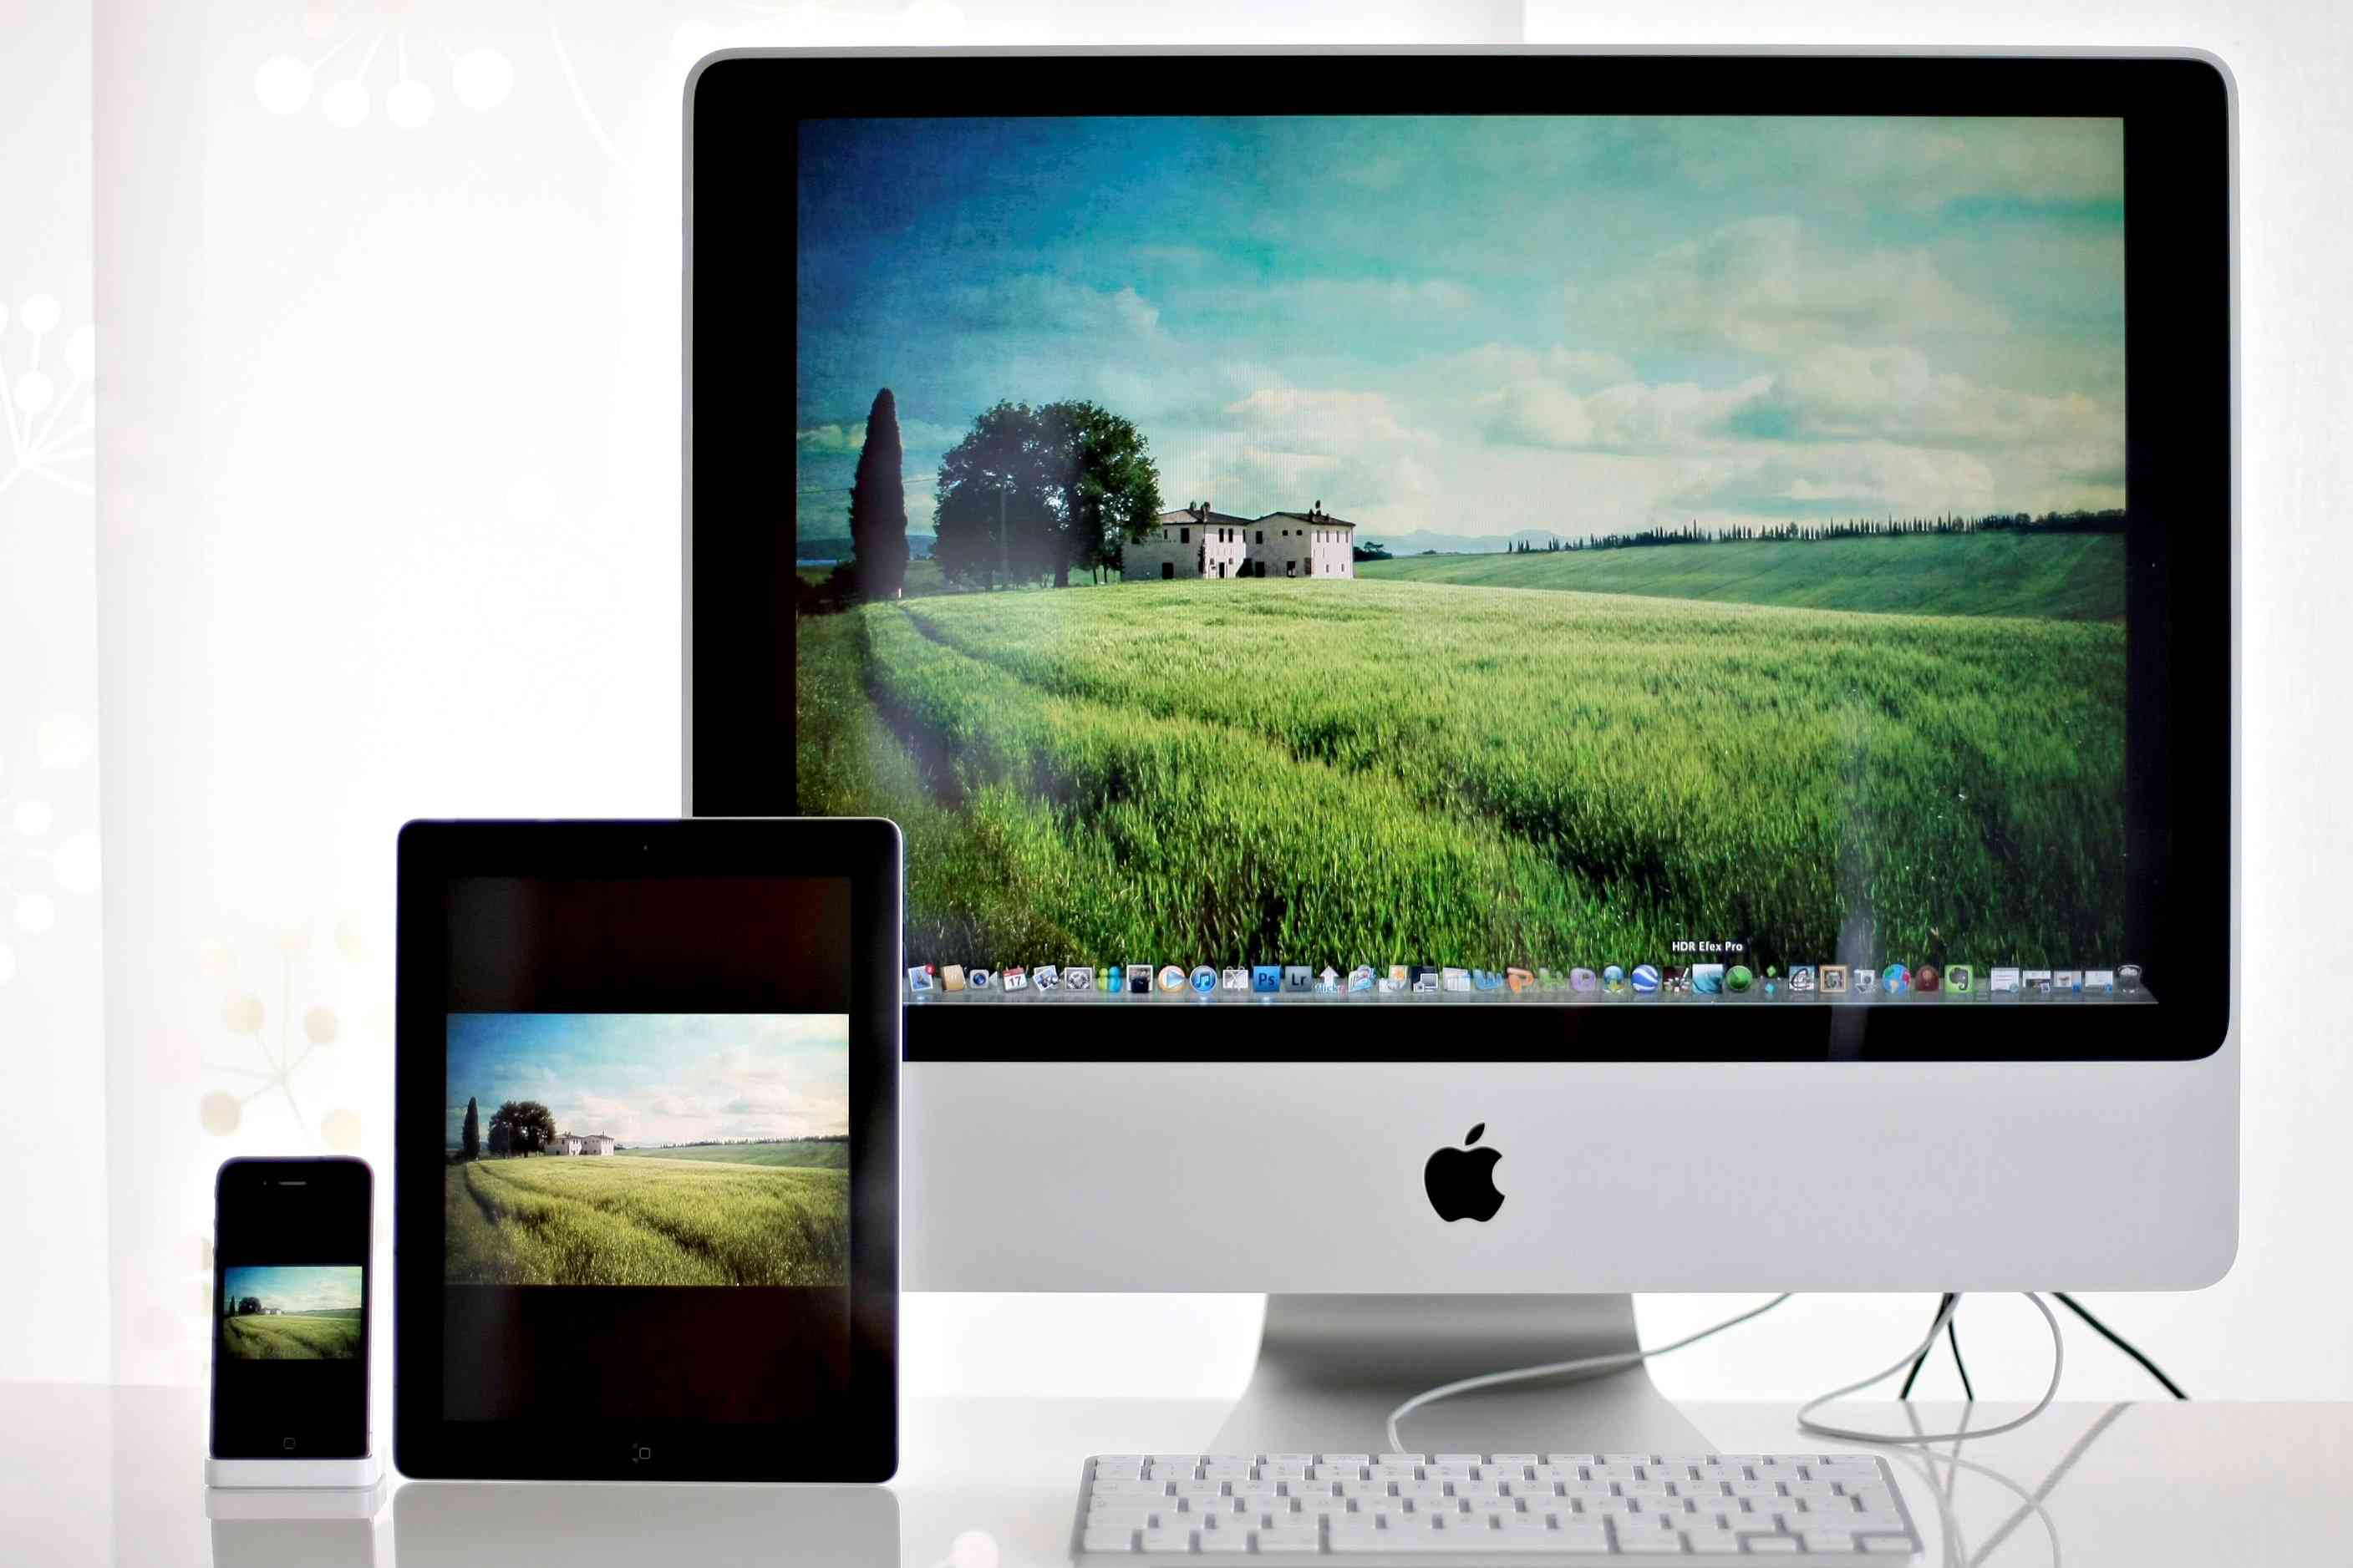 Personalize Your Mac by Changing Desktop Icons